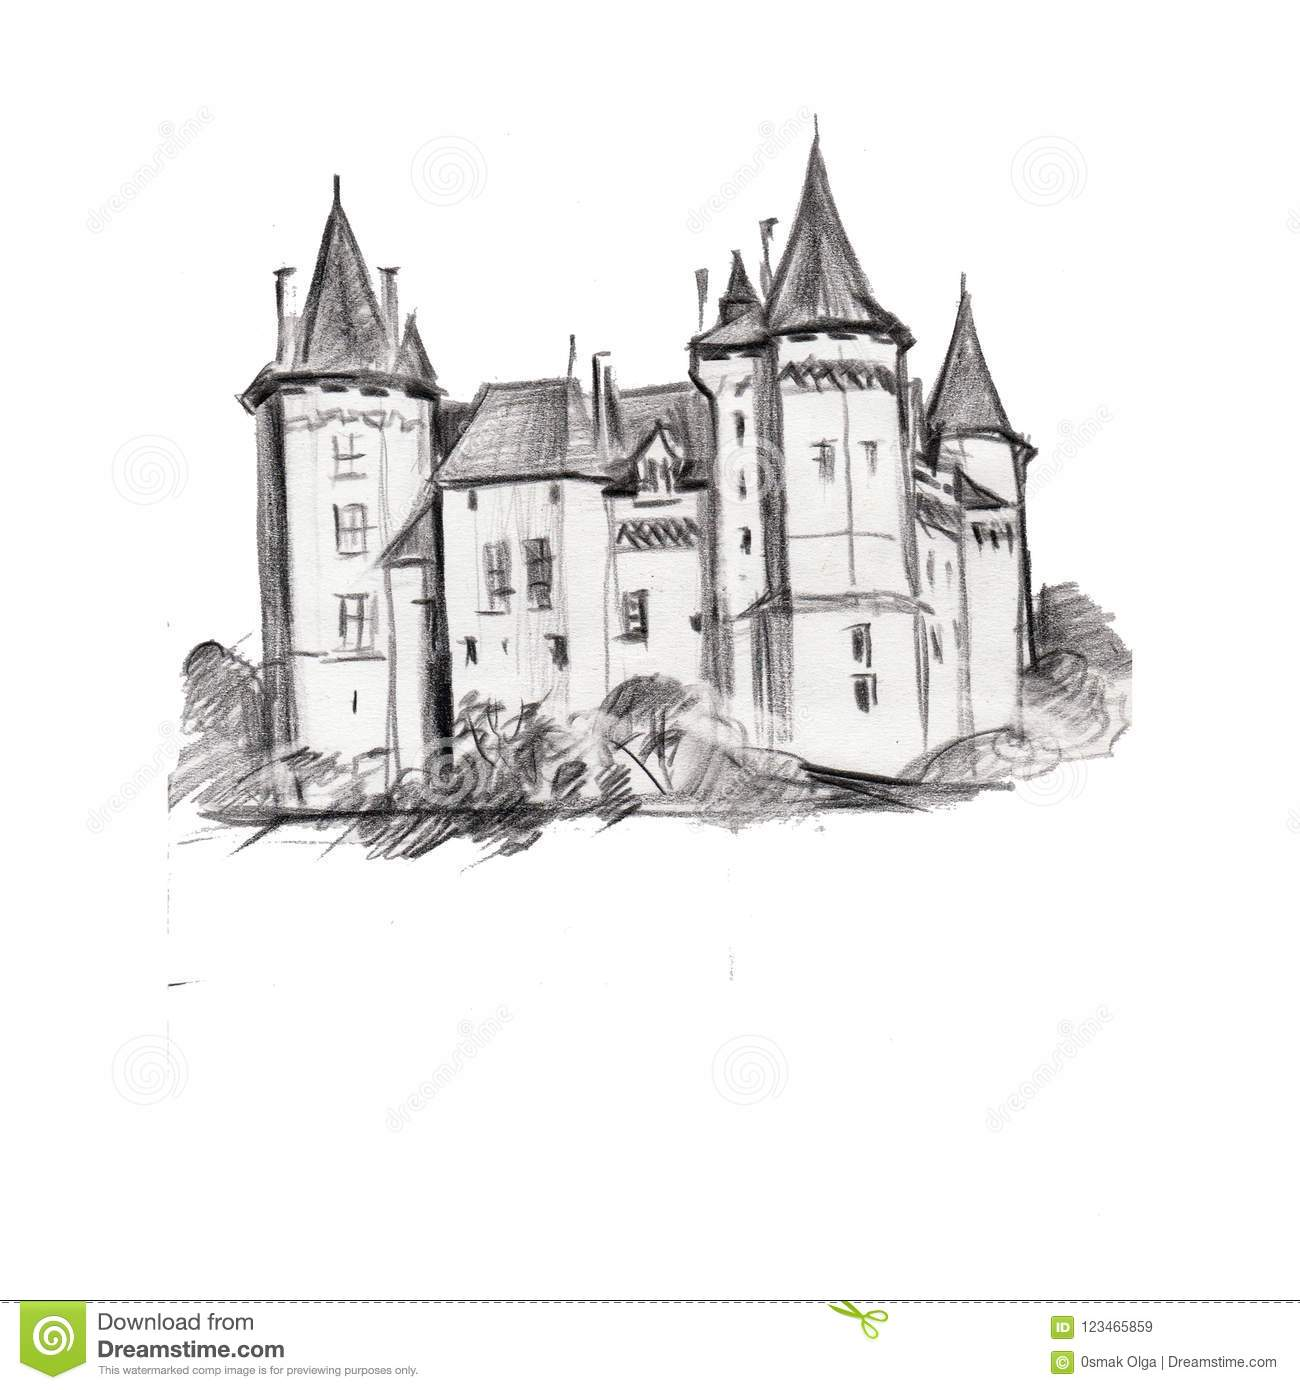 Drawing Of Architectural Structures Of The Ancien Medieval Tower